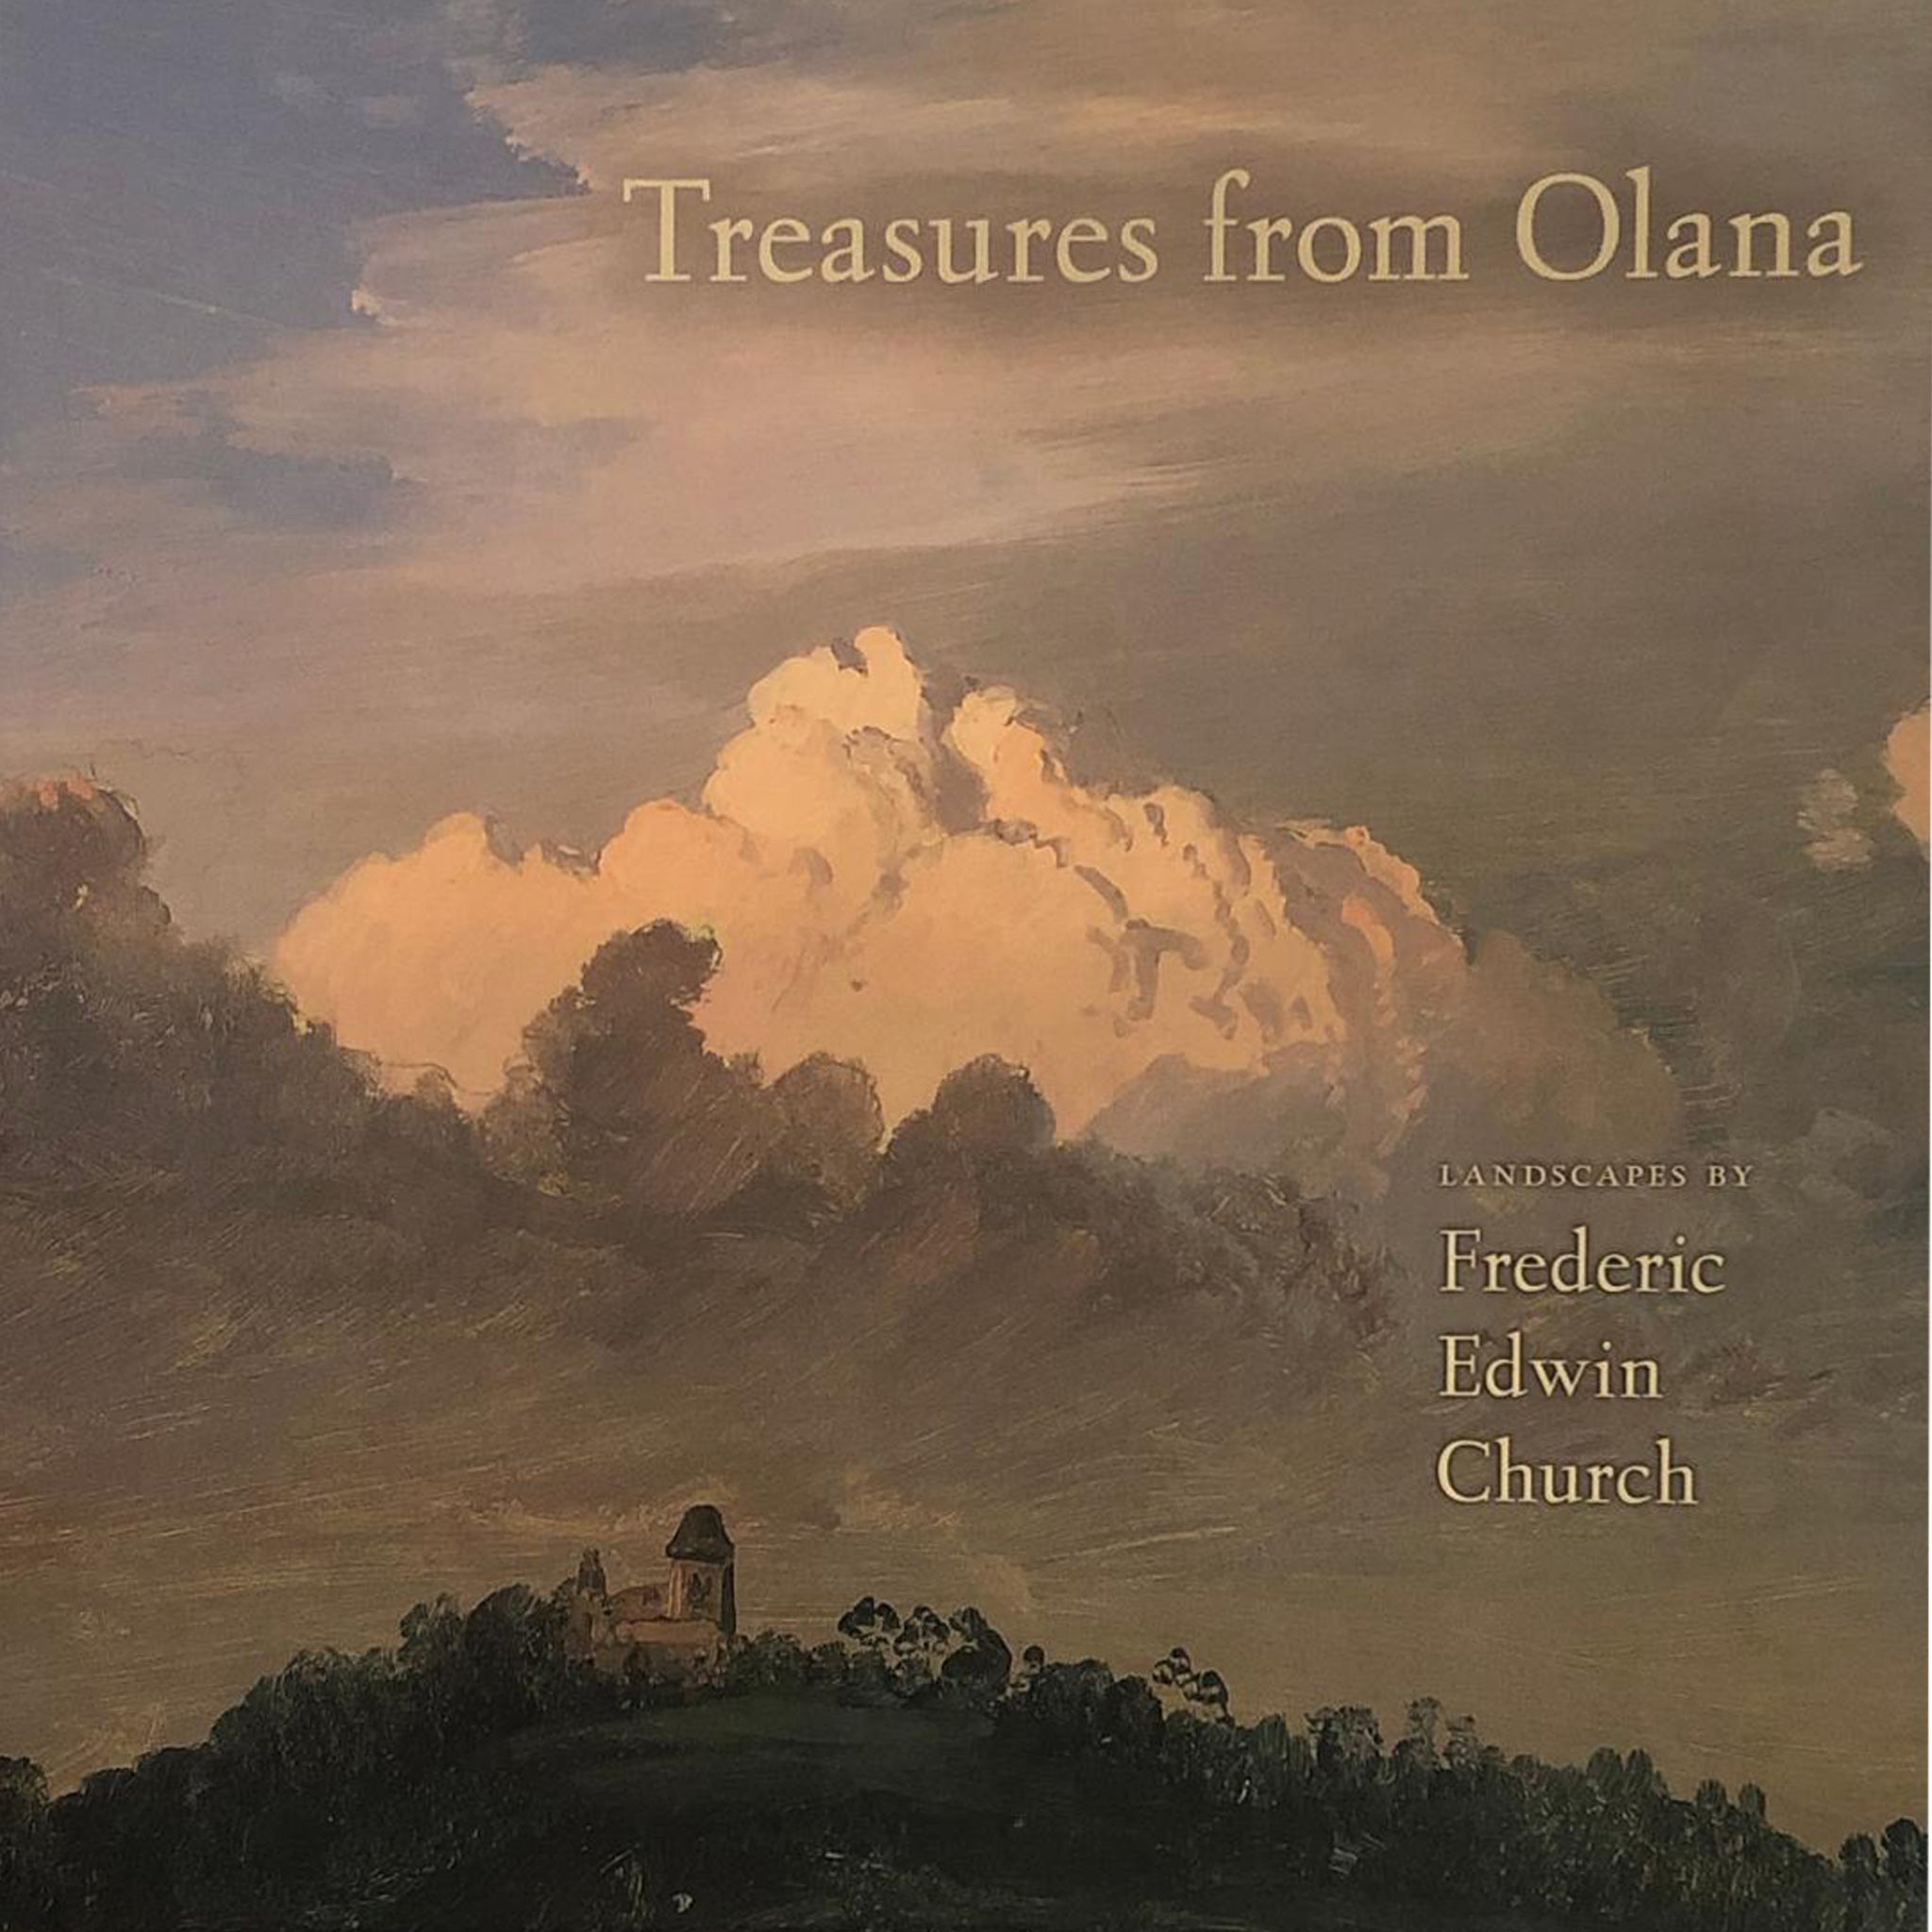 Treasures from Olana